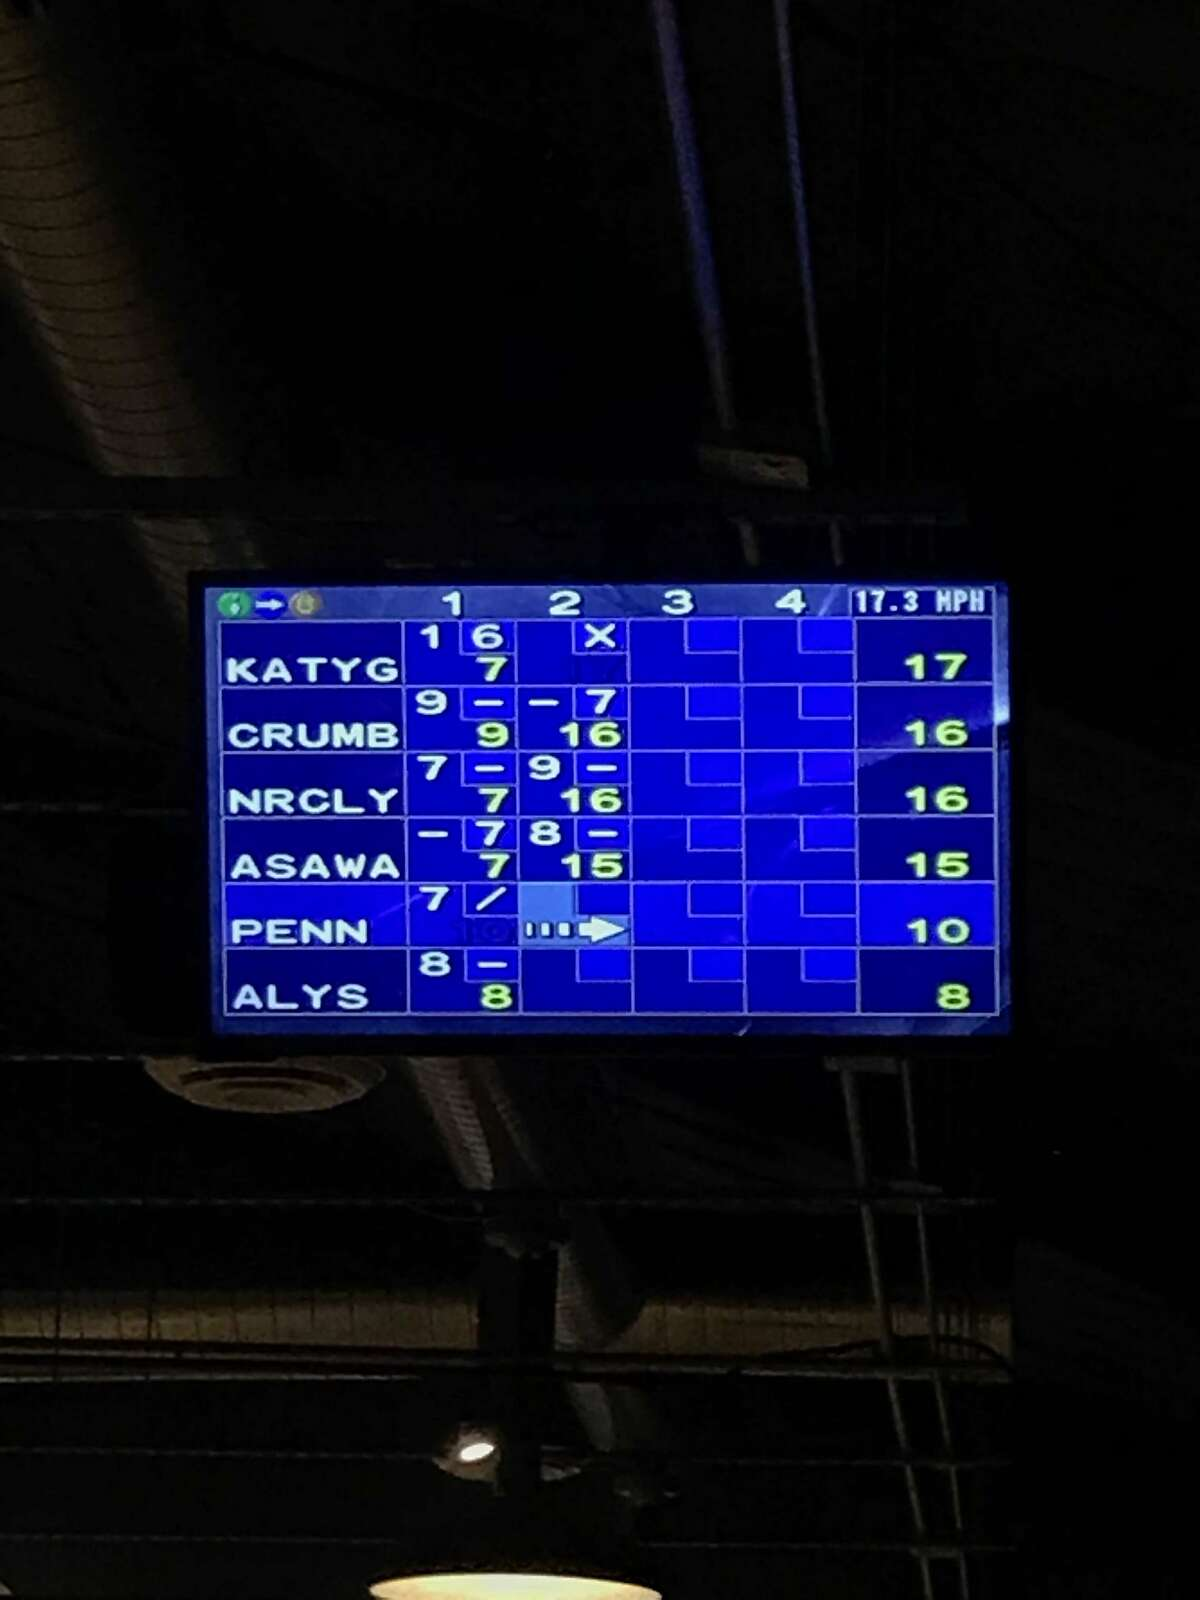 The score screen at Mission Bowling Club, featuring artists names, at the Fraenkel and Zwirner galleries art week party.